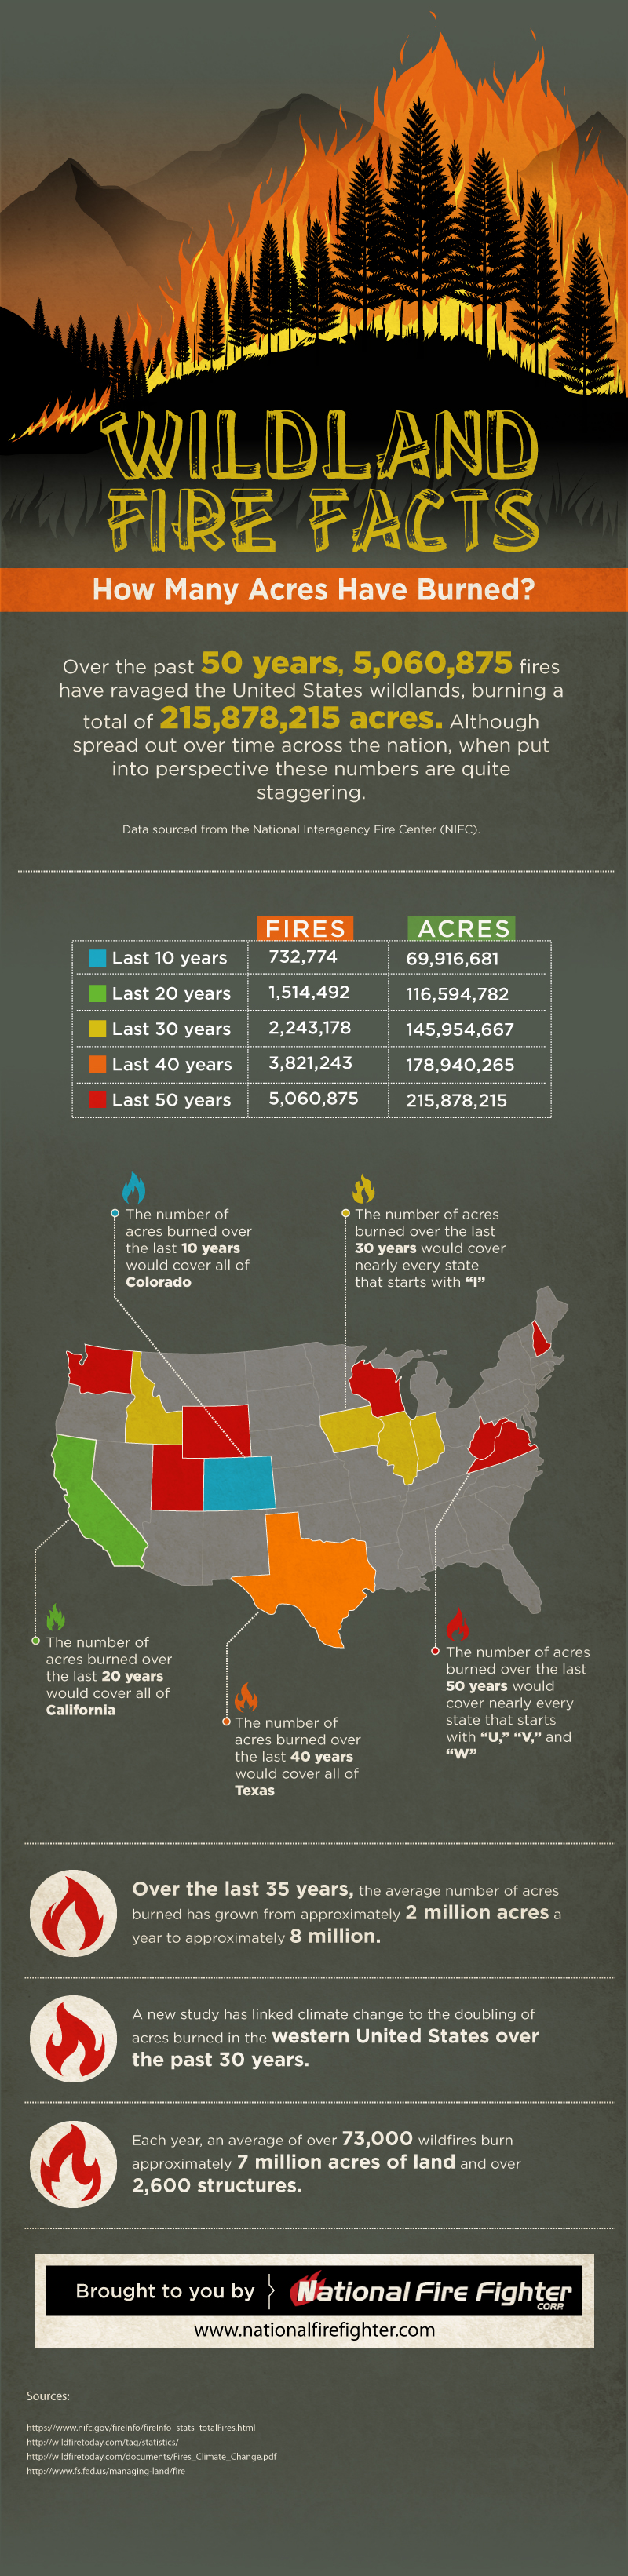 Wildland Fire Facts: How Many Acres Have Burned? [INFOGRAPHIC]